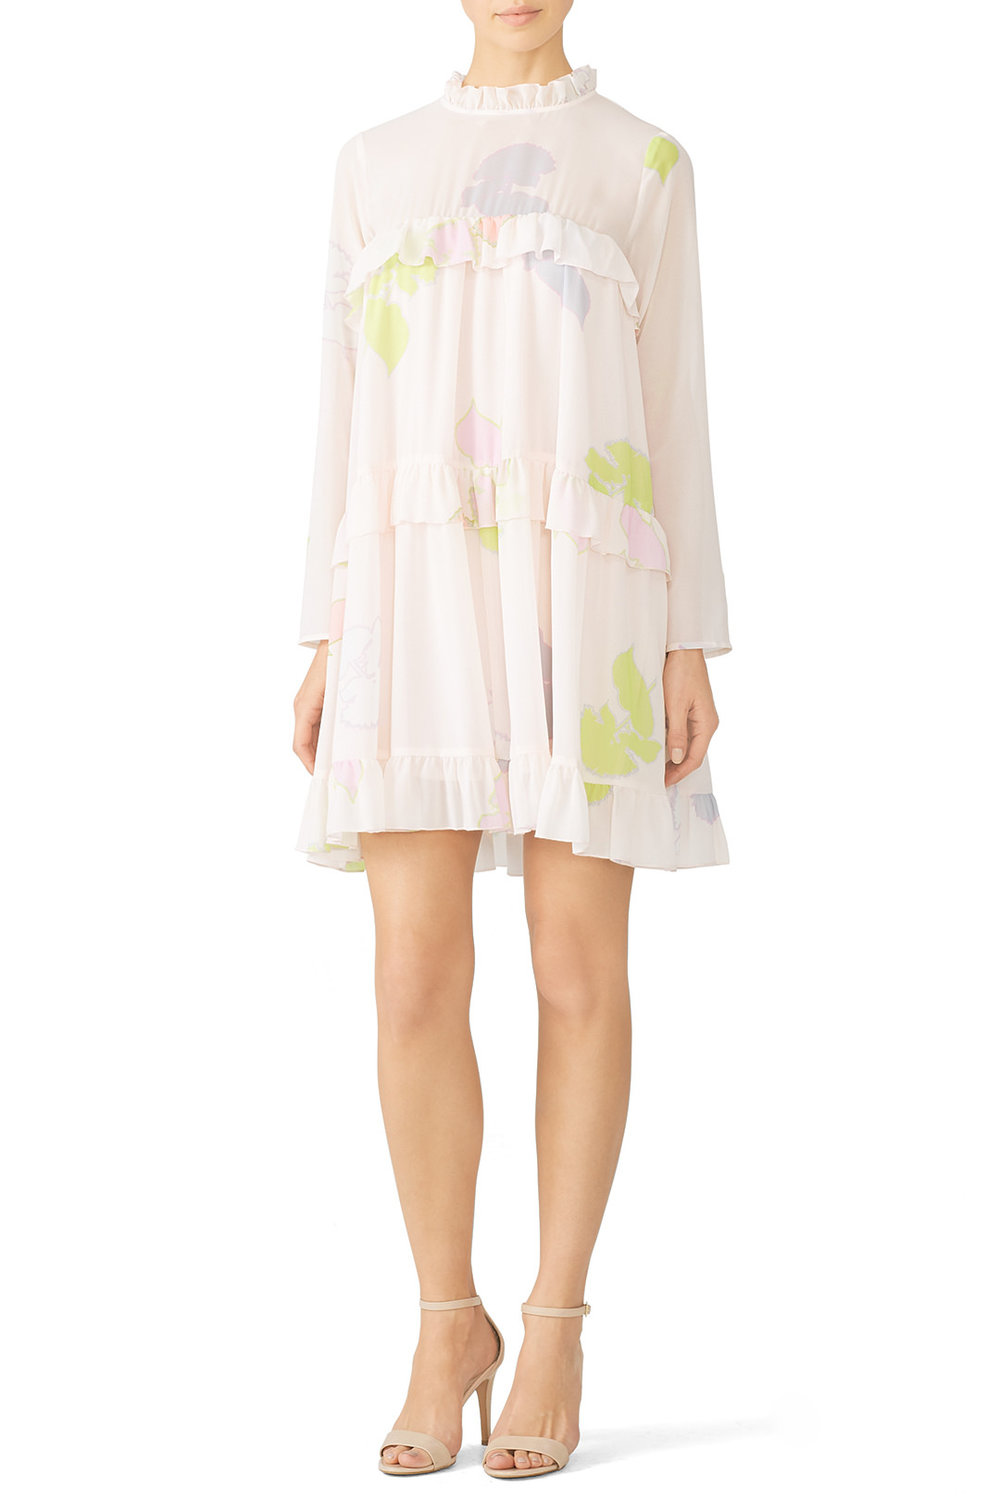 Cynthia Rowley Tiered Floral Ruffle Dress